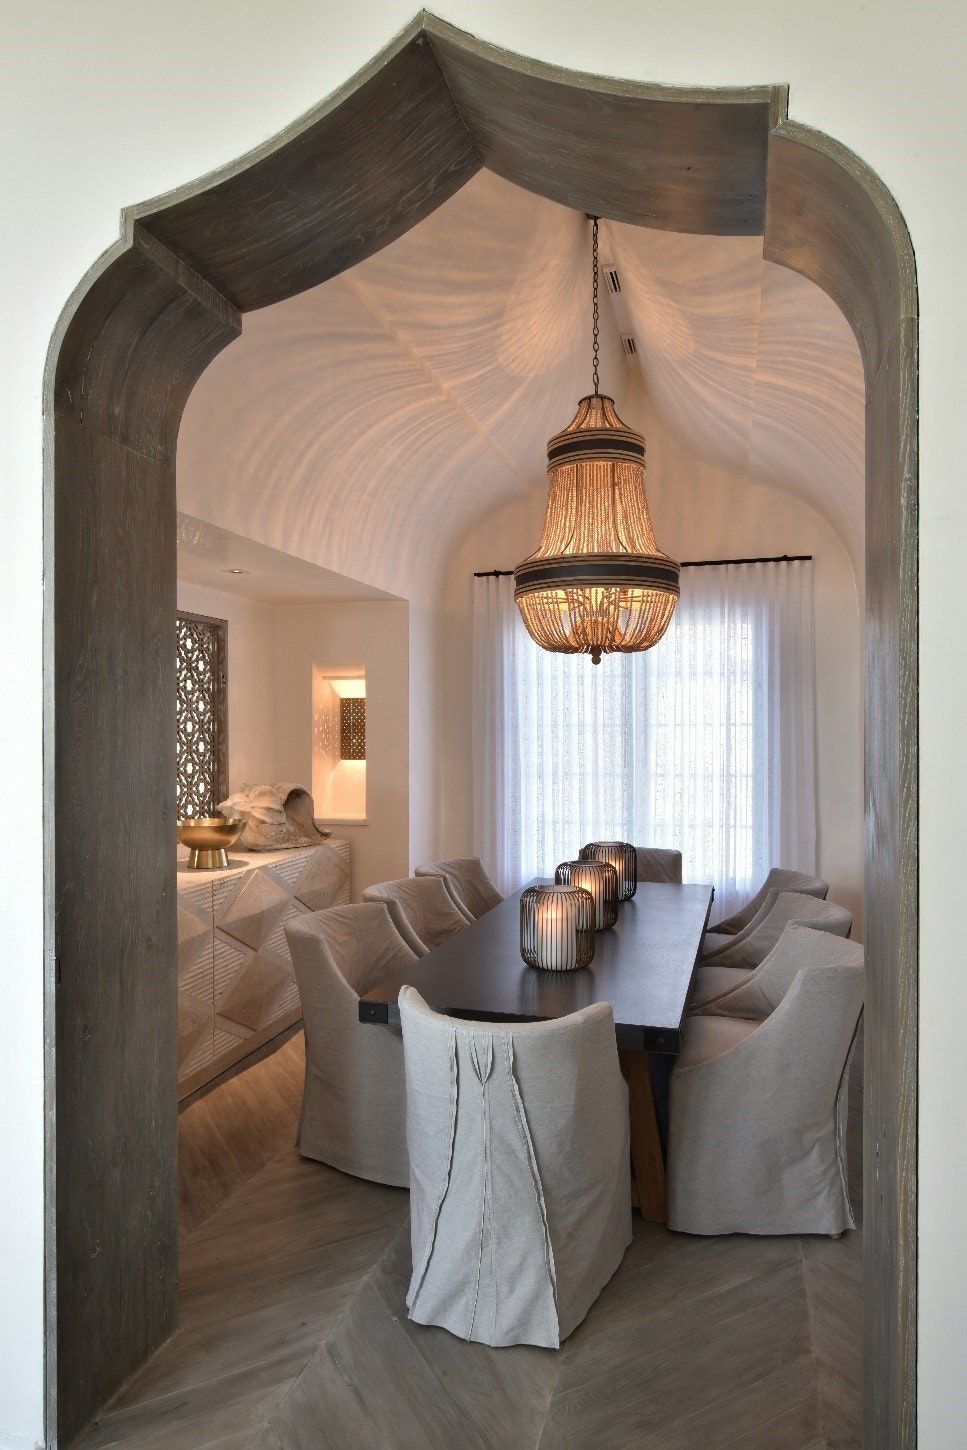 vaulted wood and plaster arch at dining room in private residence with images moroccan on kitchen interior top view id=11371